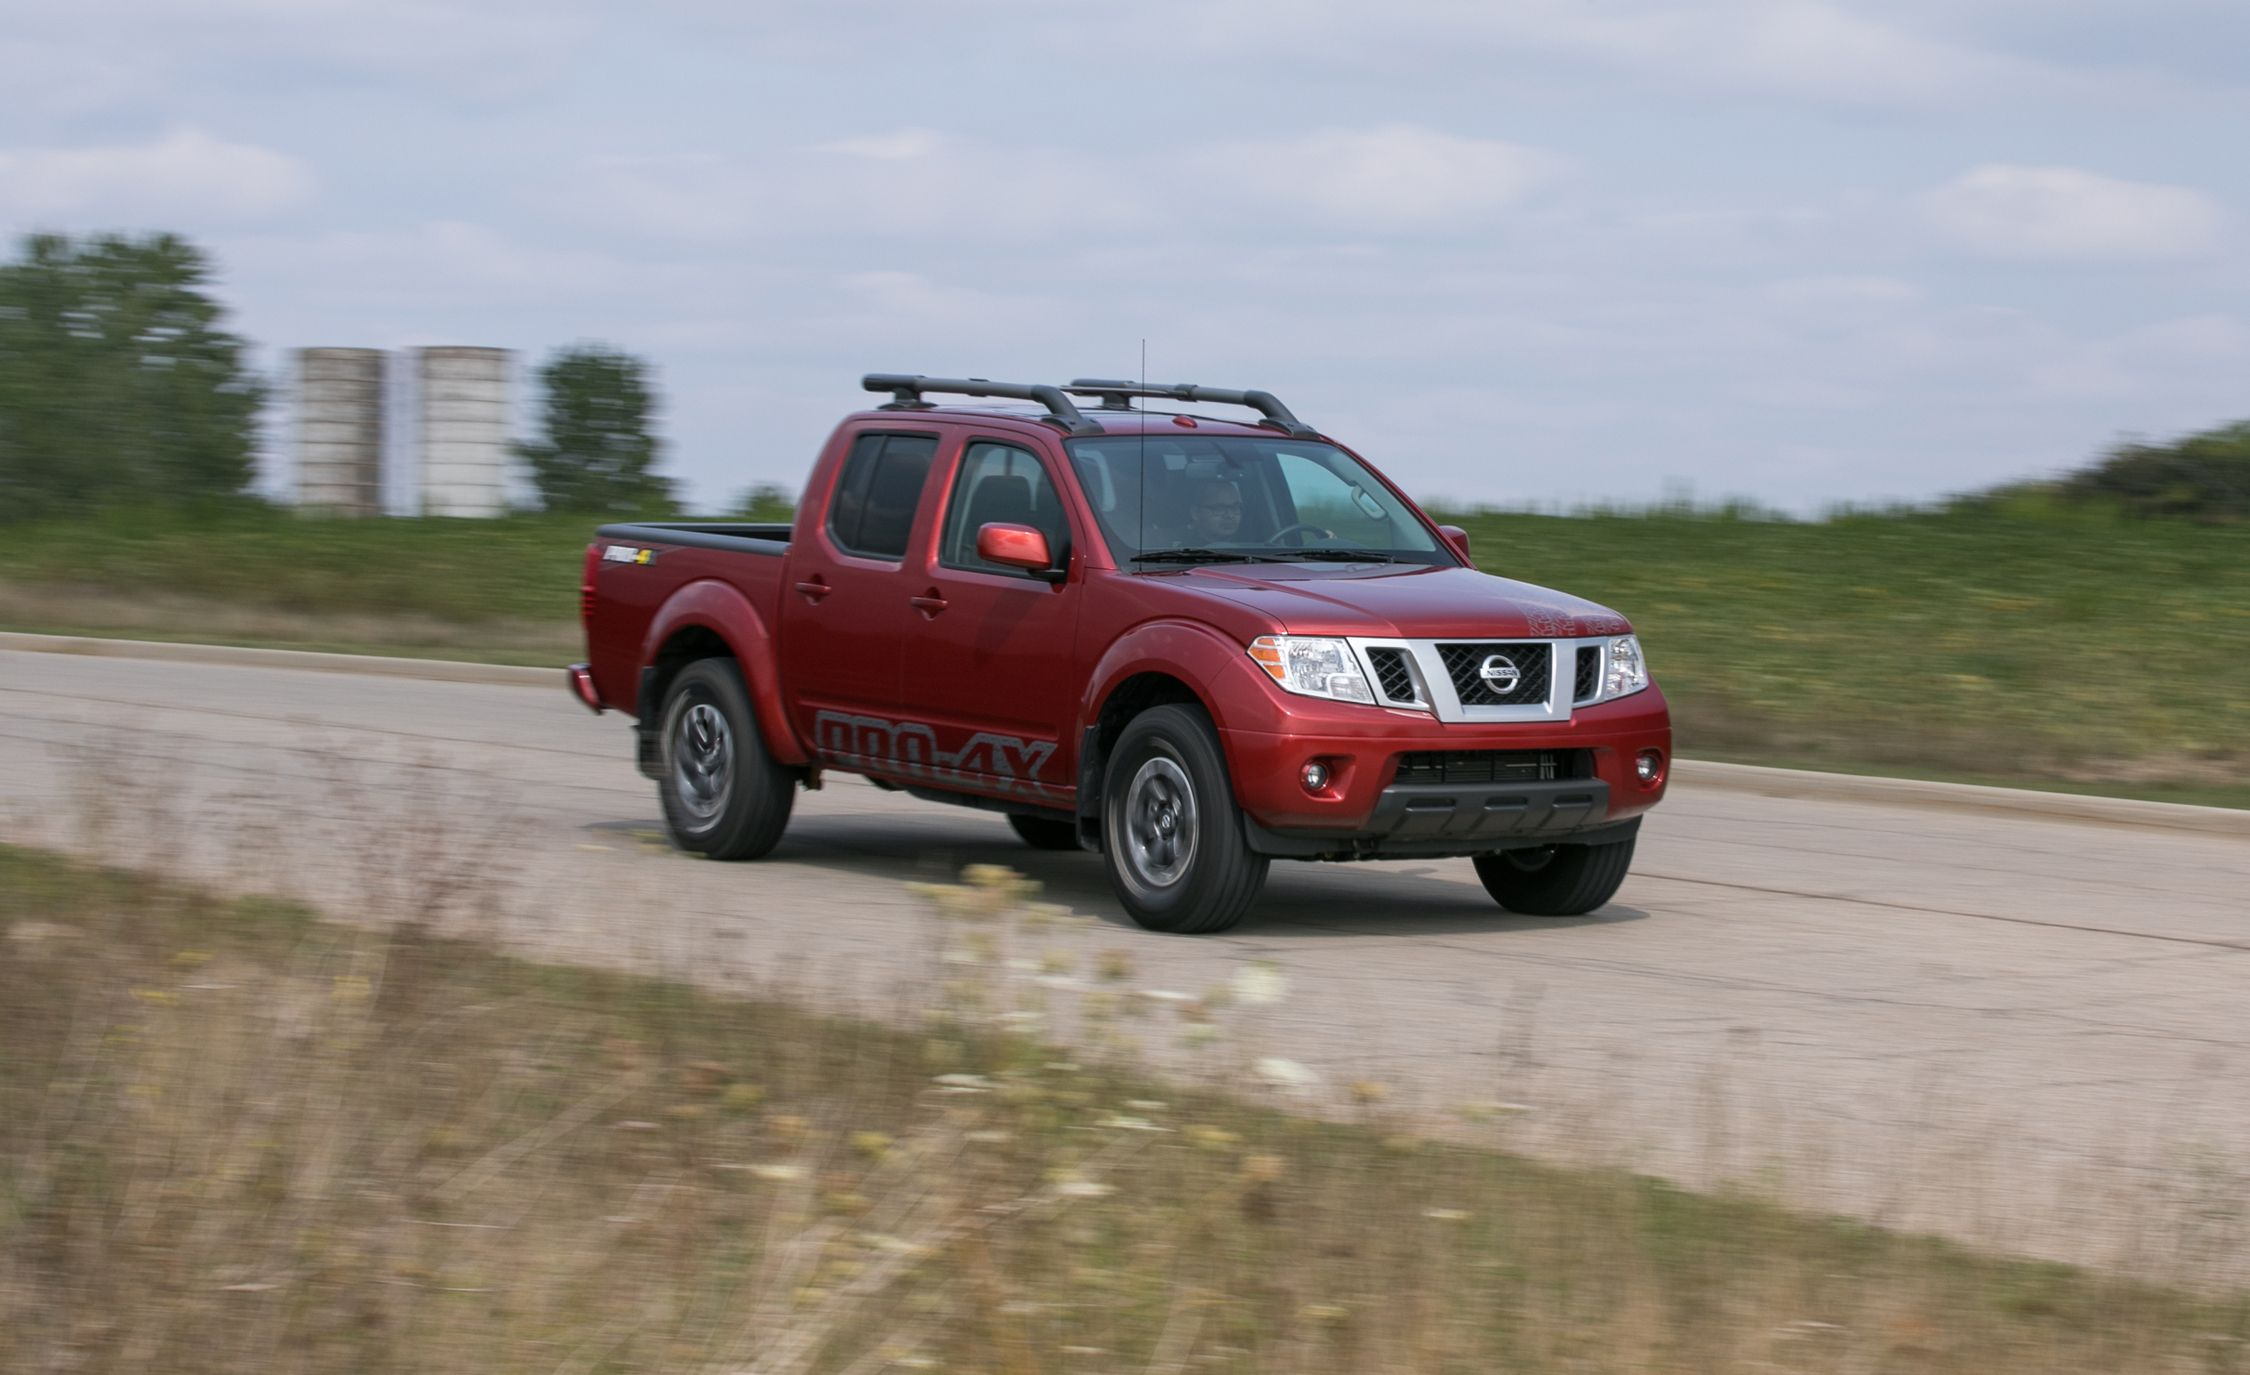 2017 nissan frontier in depth model review car and driver rh caranddriver com 2004 Nissan Frontier Manual Nissan Frontier Interior Exploded